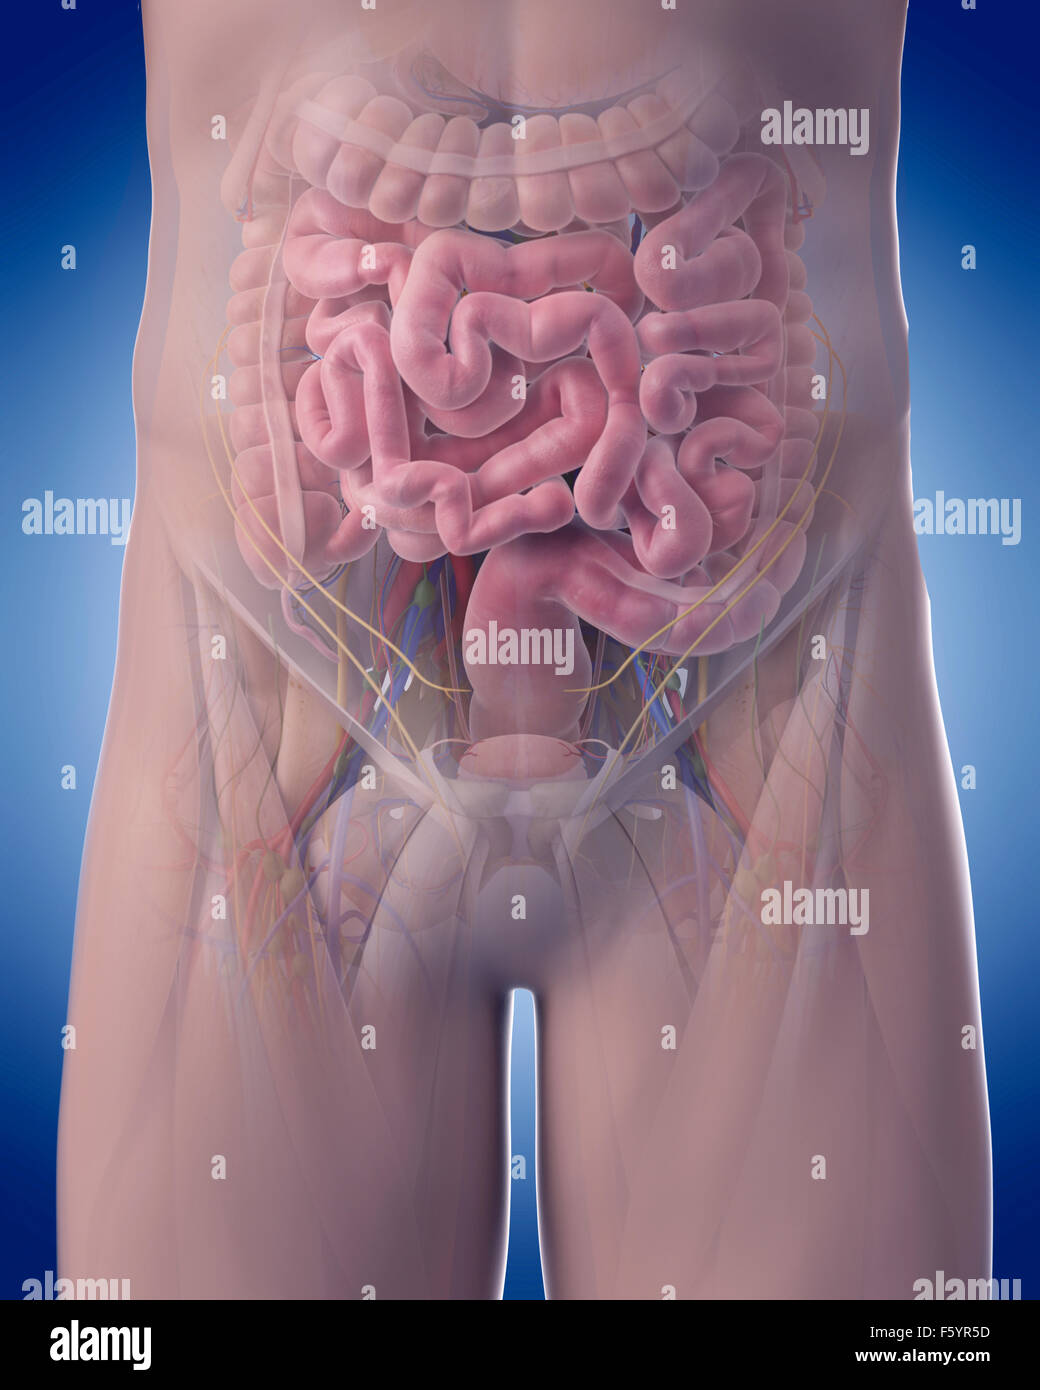 medically accurate illustration of abdominal anatomy - Stock Image